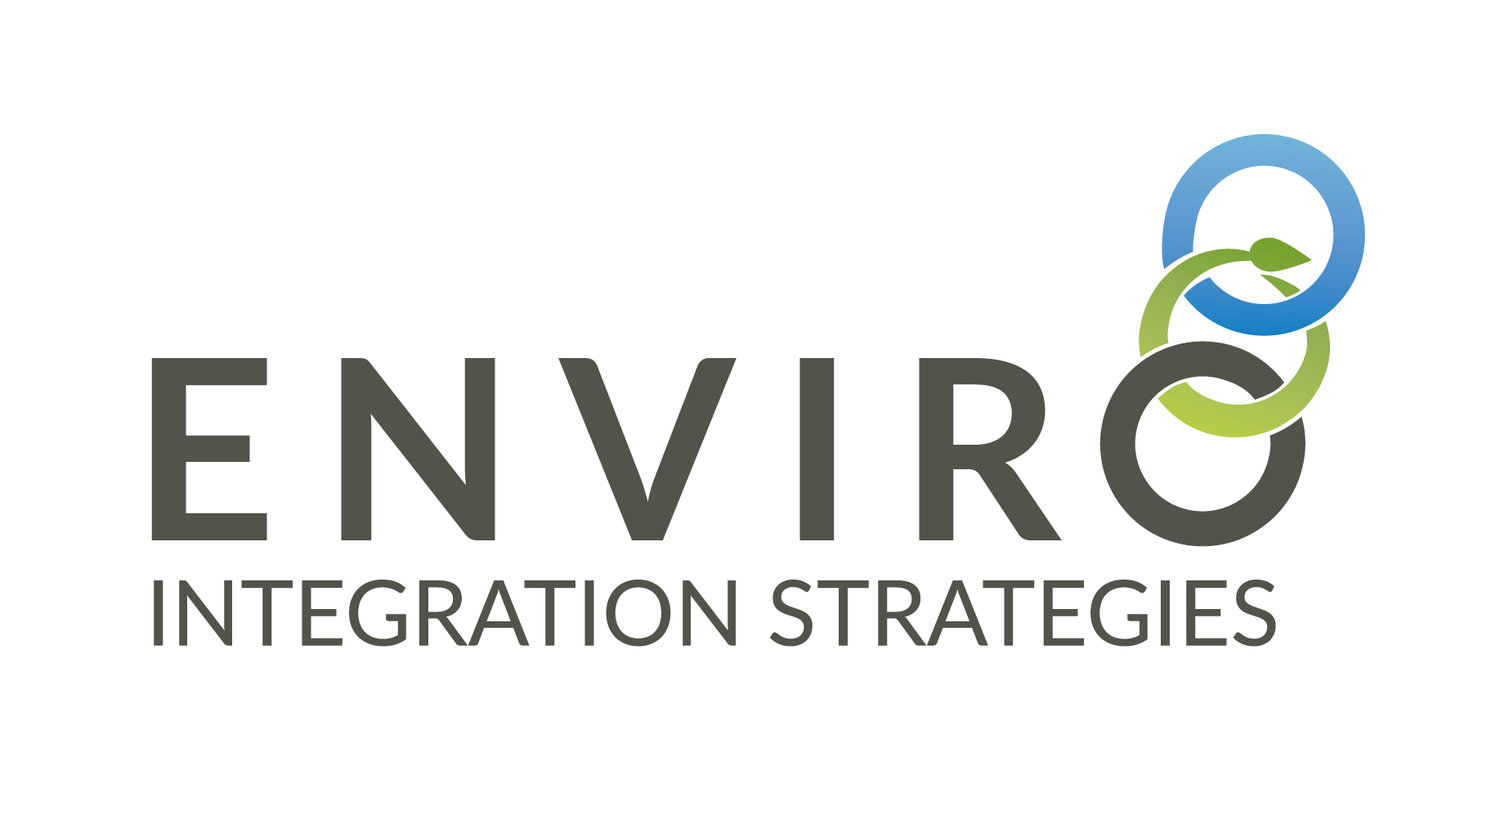 Enviro Integration Strategies